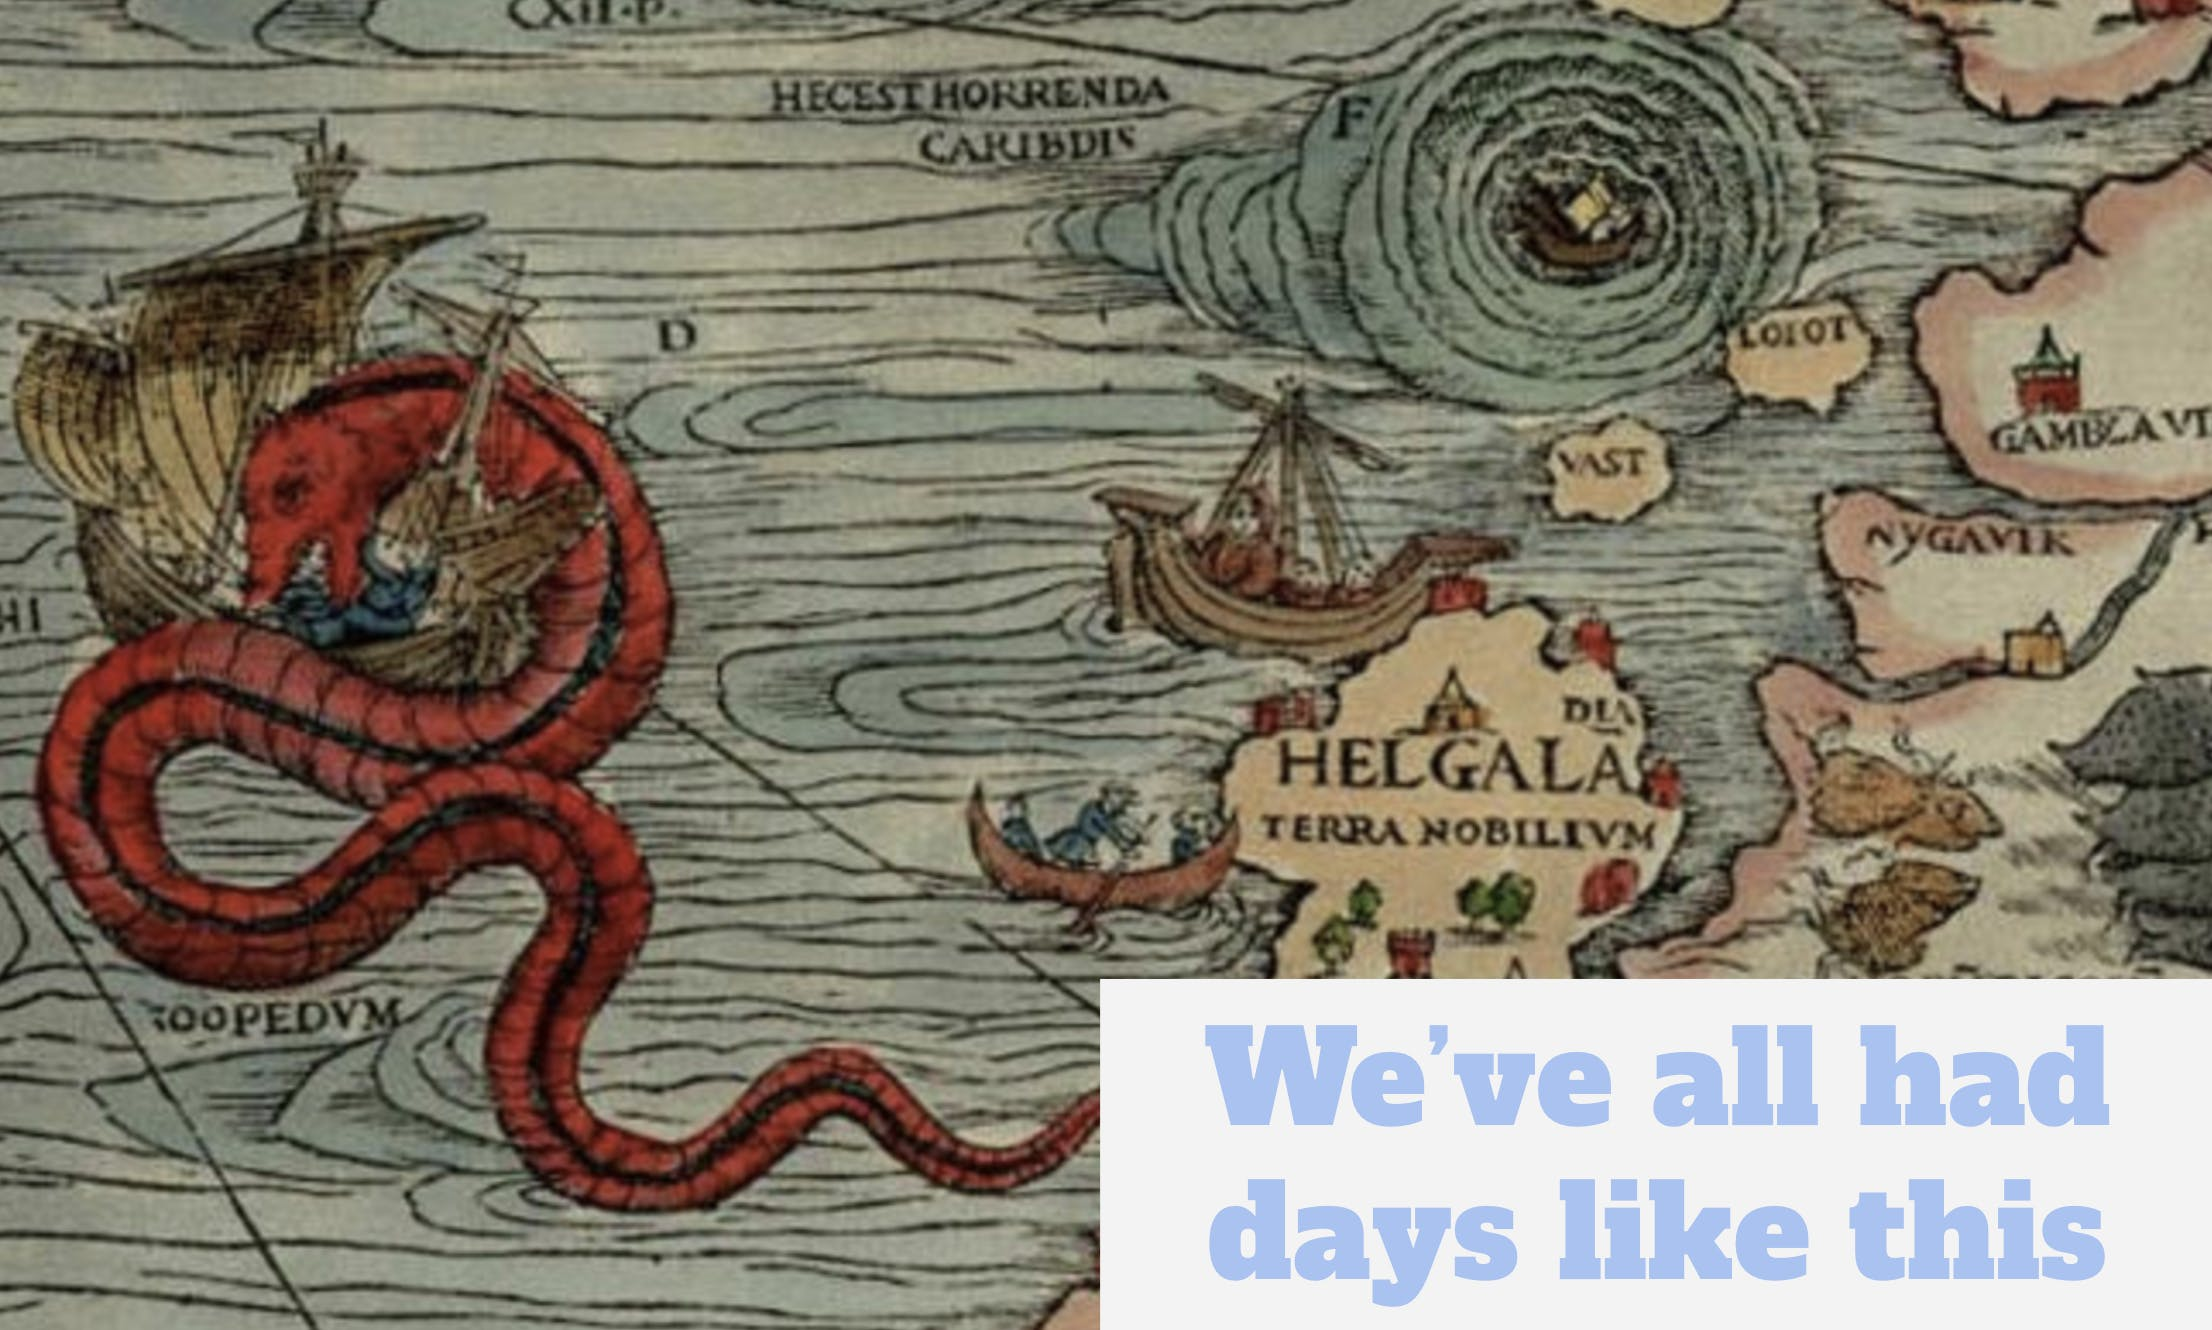 Image of a dragon eating a ship, with the caption: 'we've all had days like these'